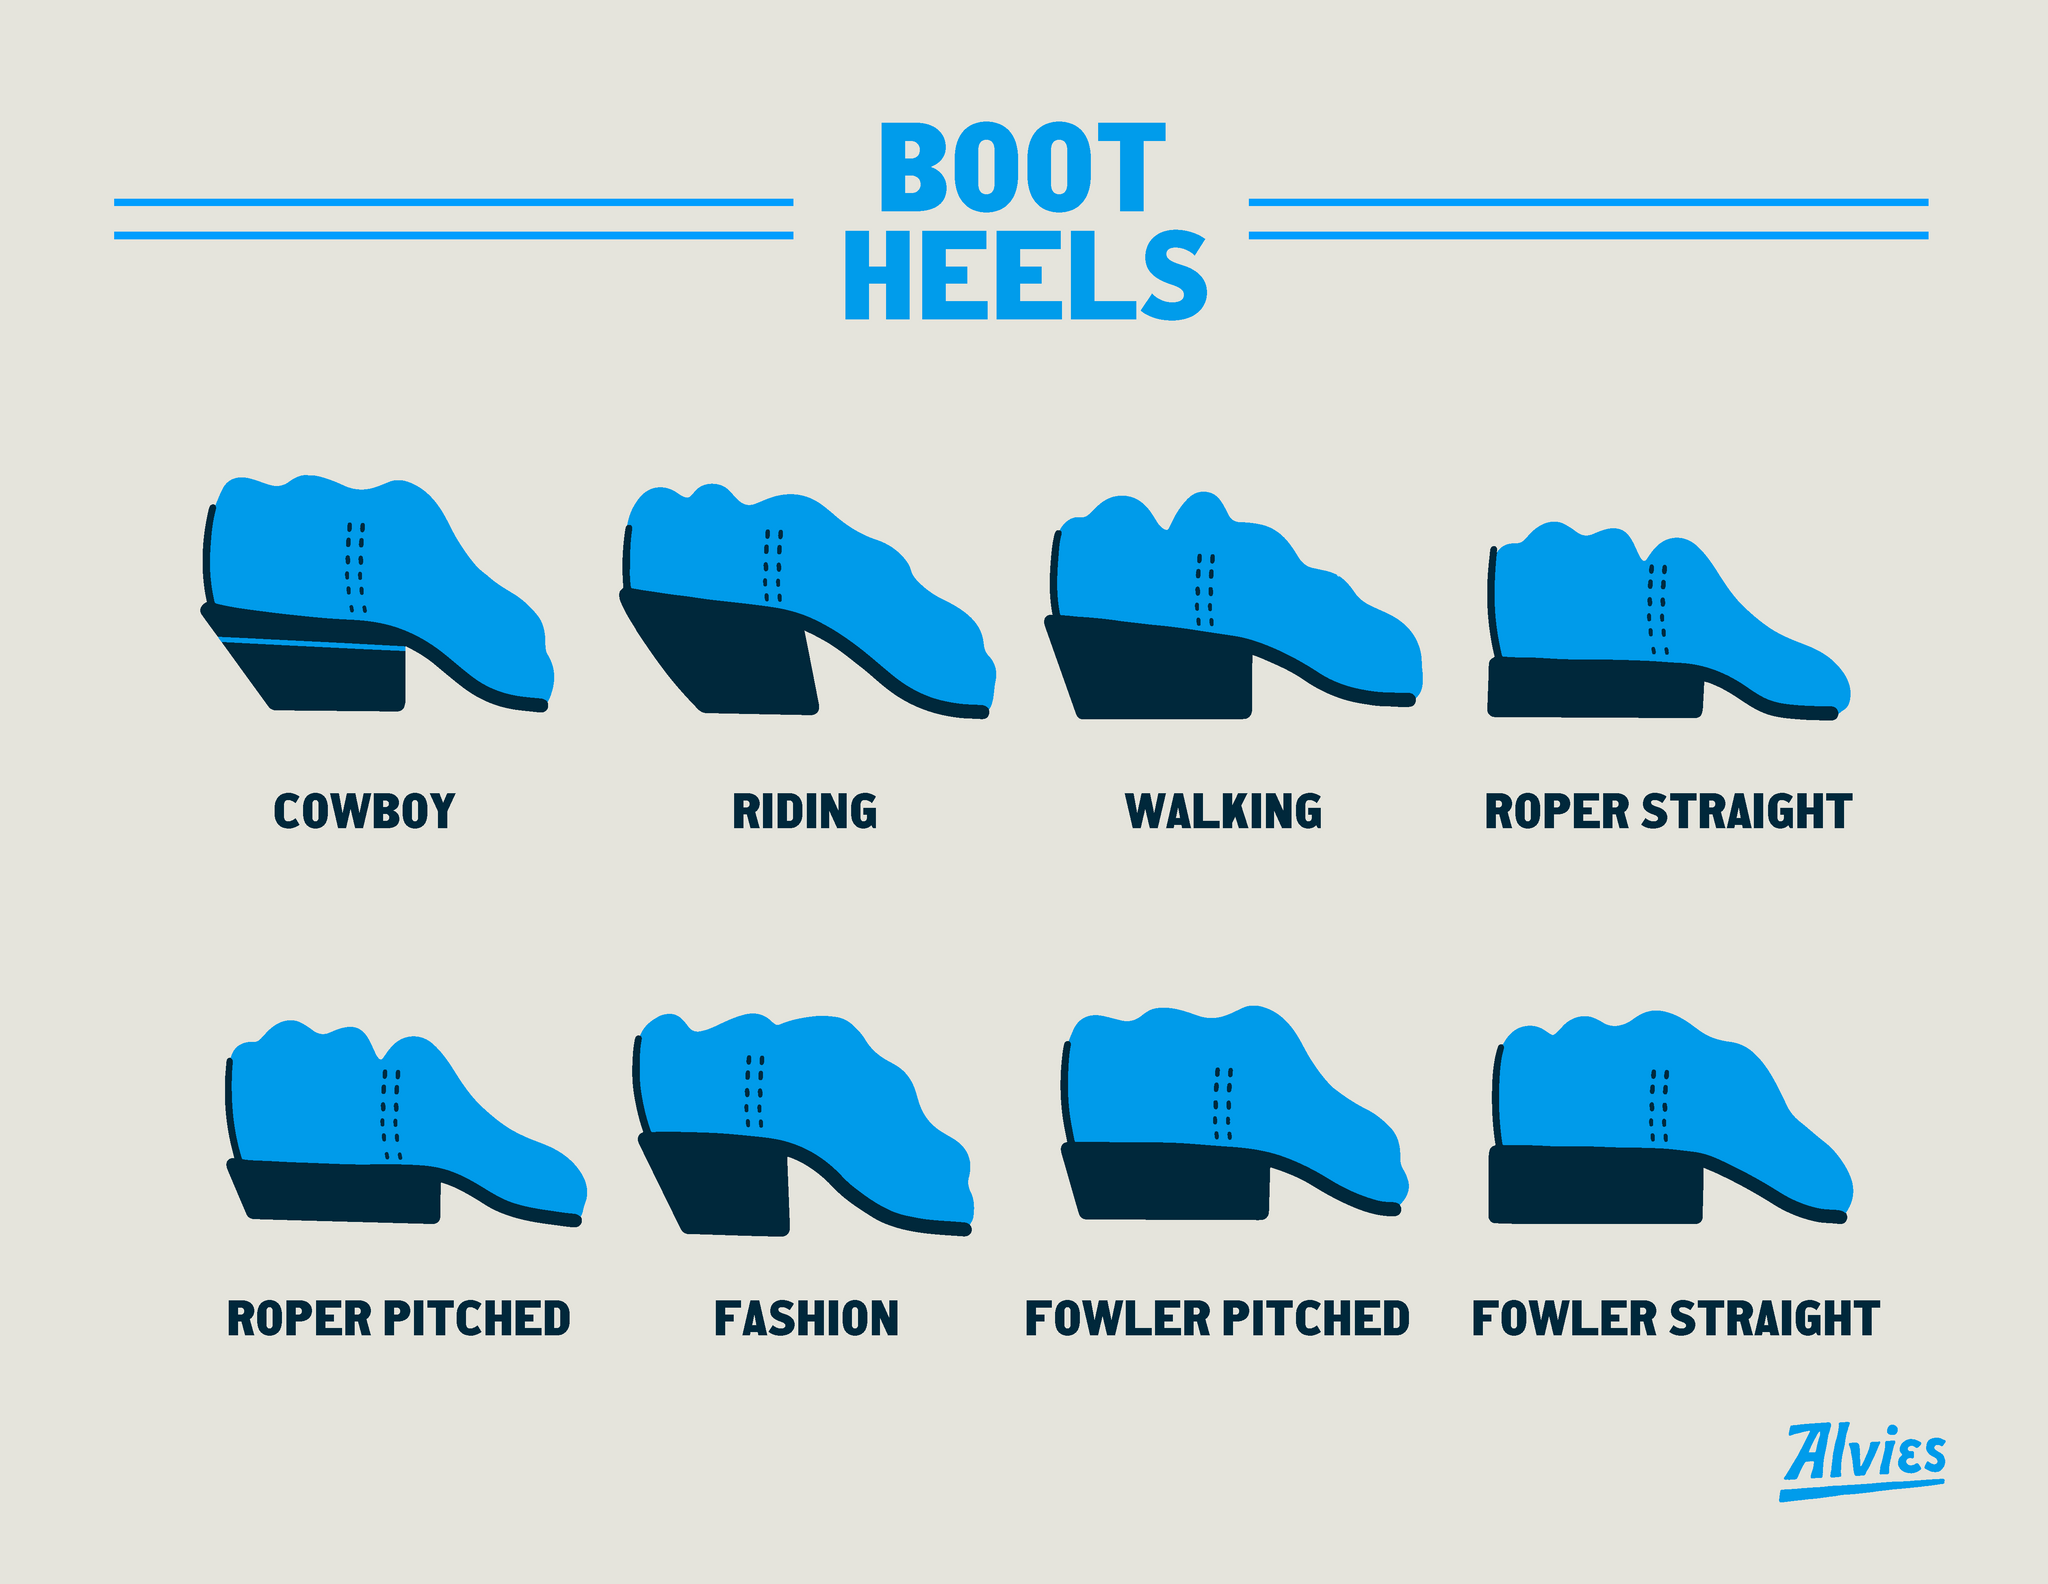 COWBOY BOOT HEEL STYLES (AND WHY ALVIES BOOTS HAVE COWBOY HEELS)